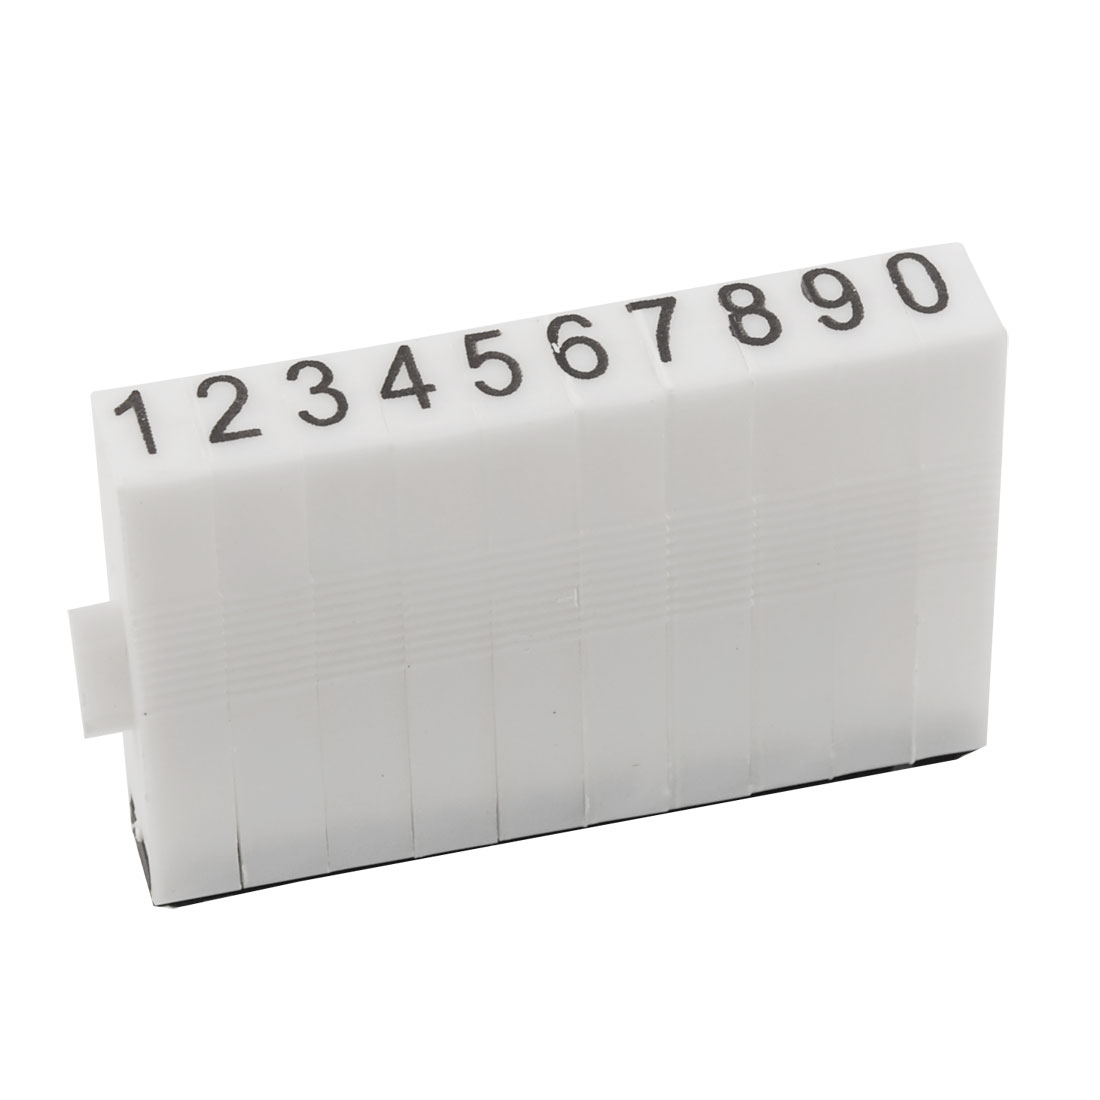 Black Rubber Head 10 Digits Arabic Numerals Combination Stamp Block